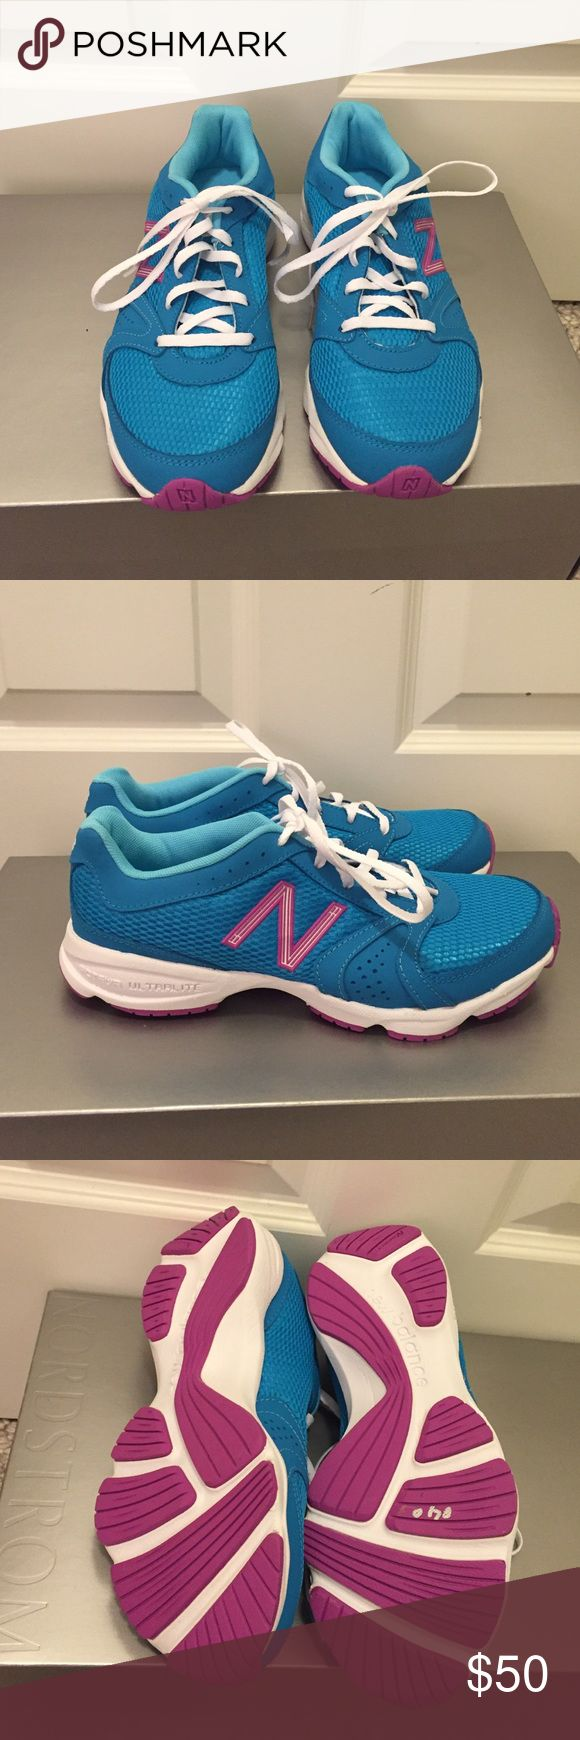 Nwot New Balance gym shoes 7.5 Nwot new balance gym shoes size 7.5.  Never worn, no flaws. I don't have the original box New Balance Shoes Athletic Shoes